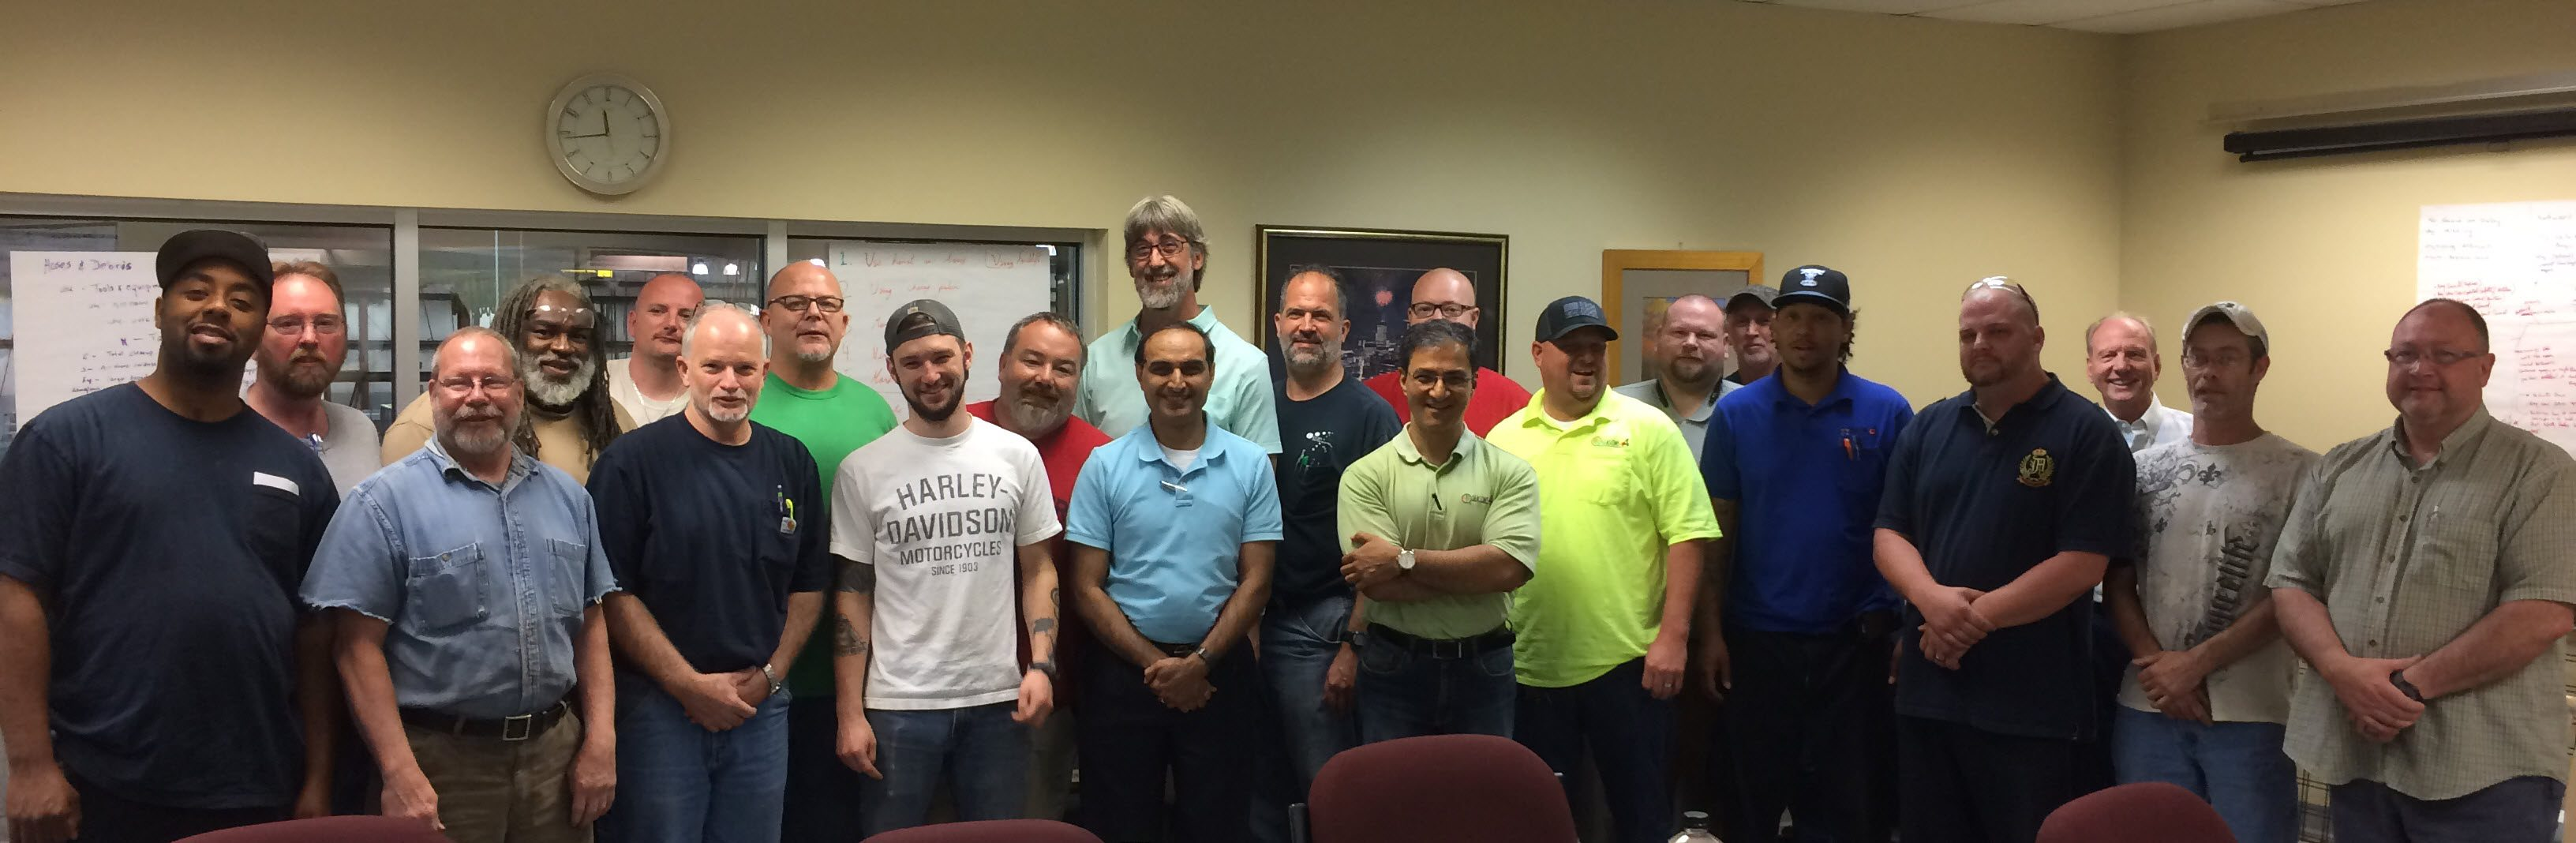 Season-4 held a ceremony to recognize team members who helped implement the company-wide improvement plan.